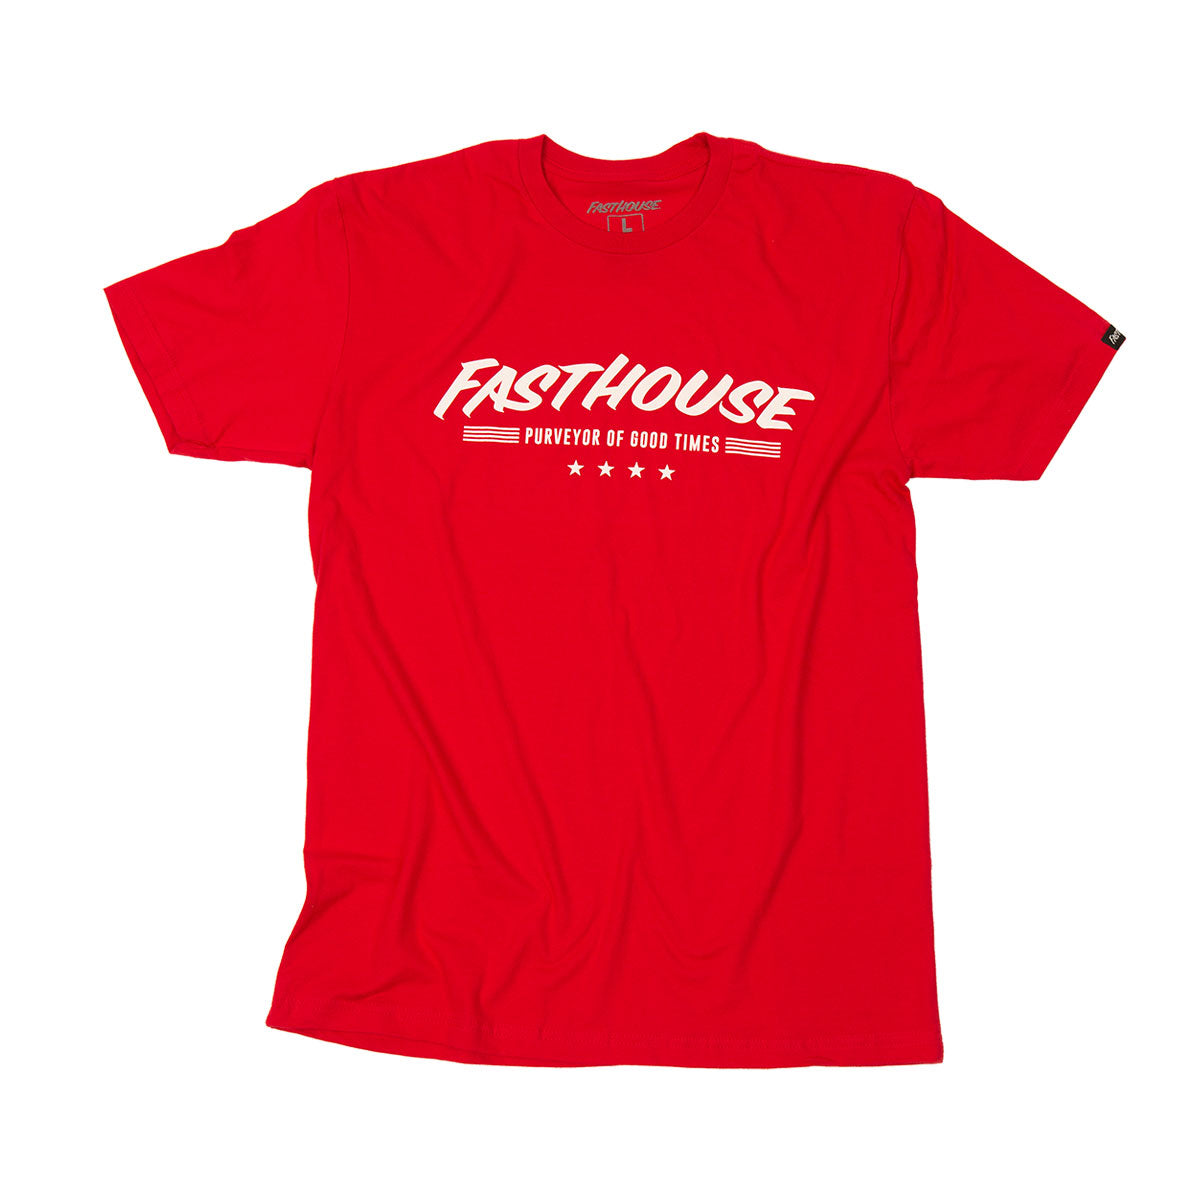 Four Stars Youth Tee - Red